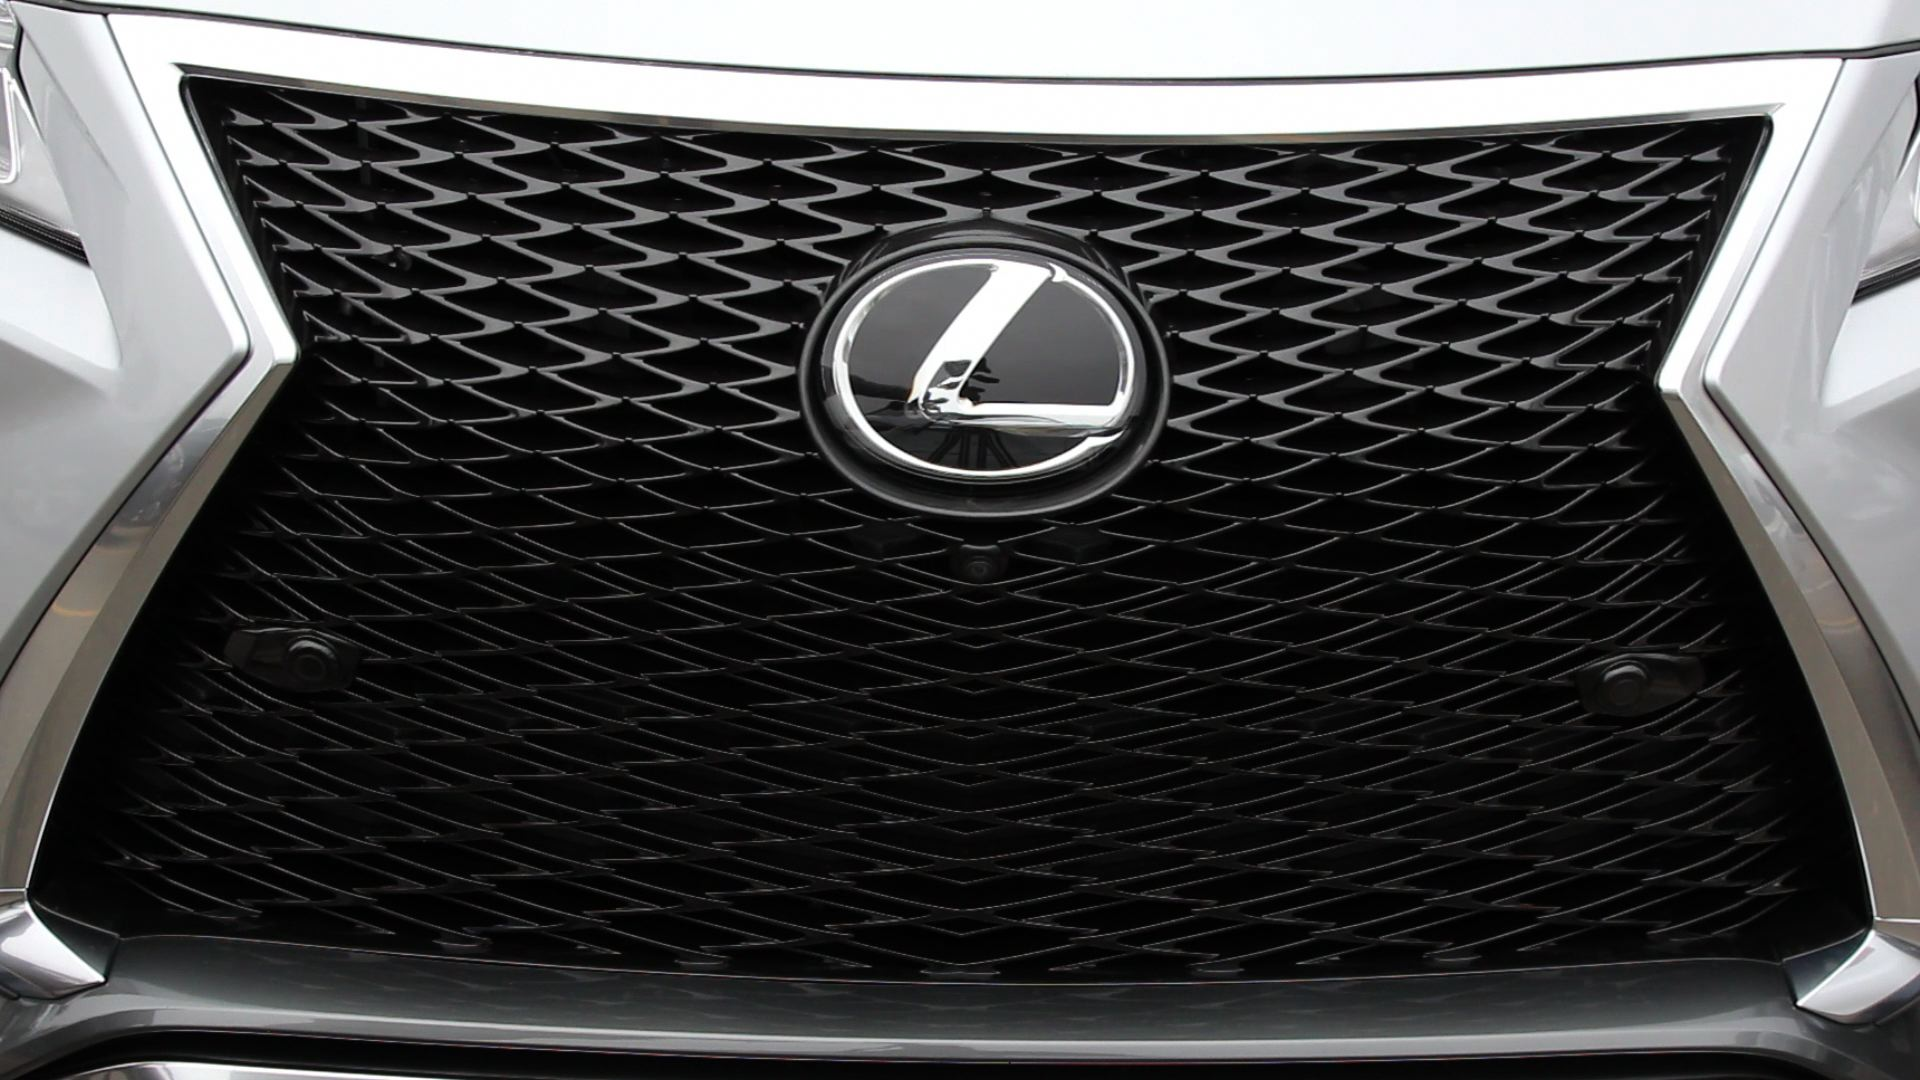 2106 Lexus RX spindle grill